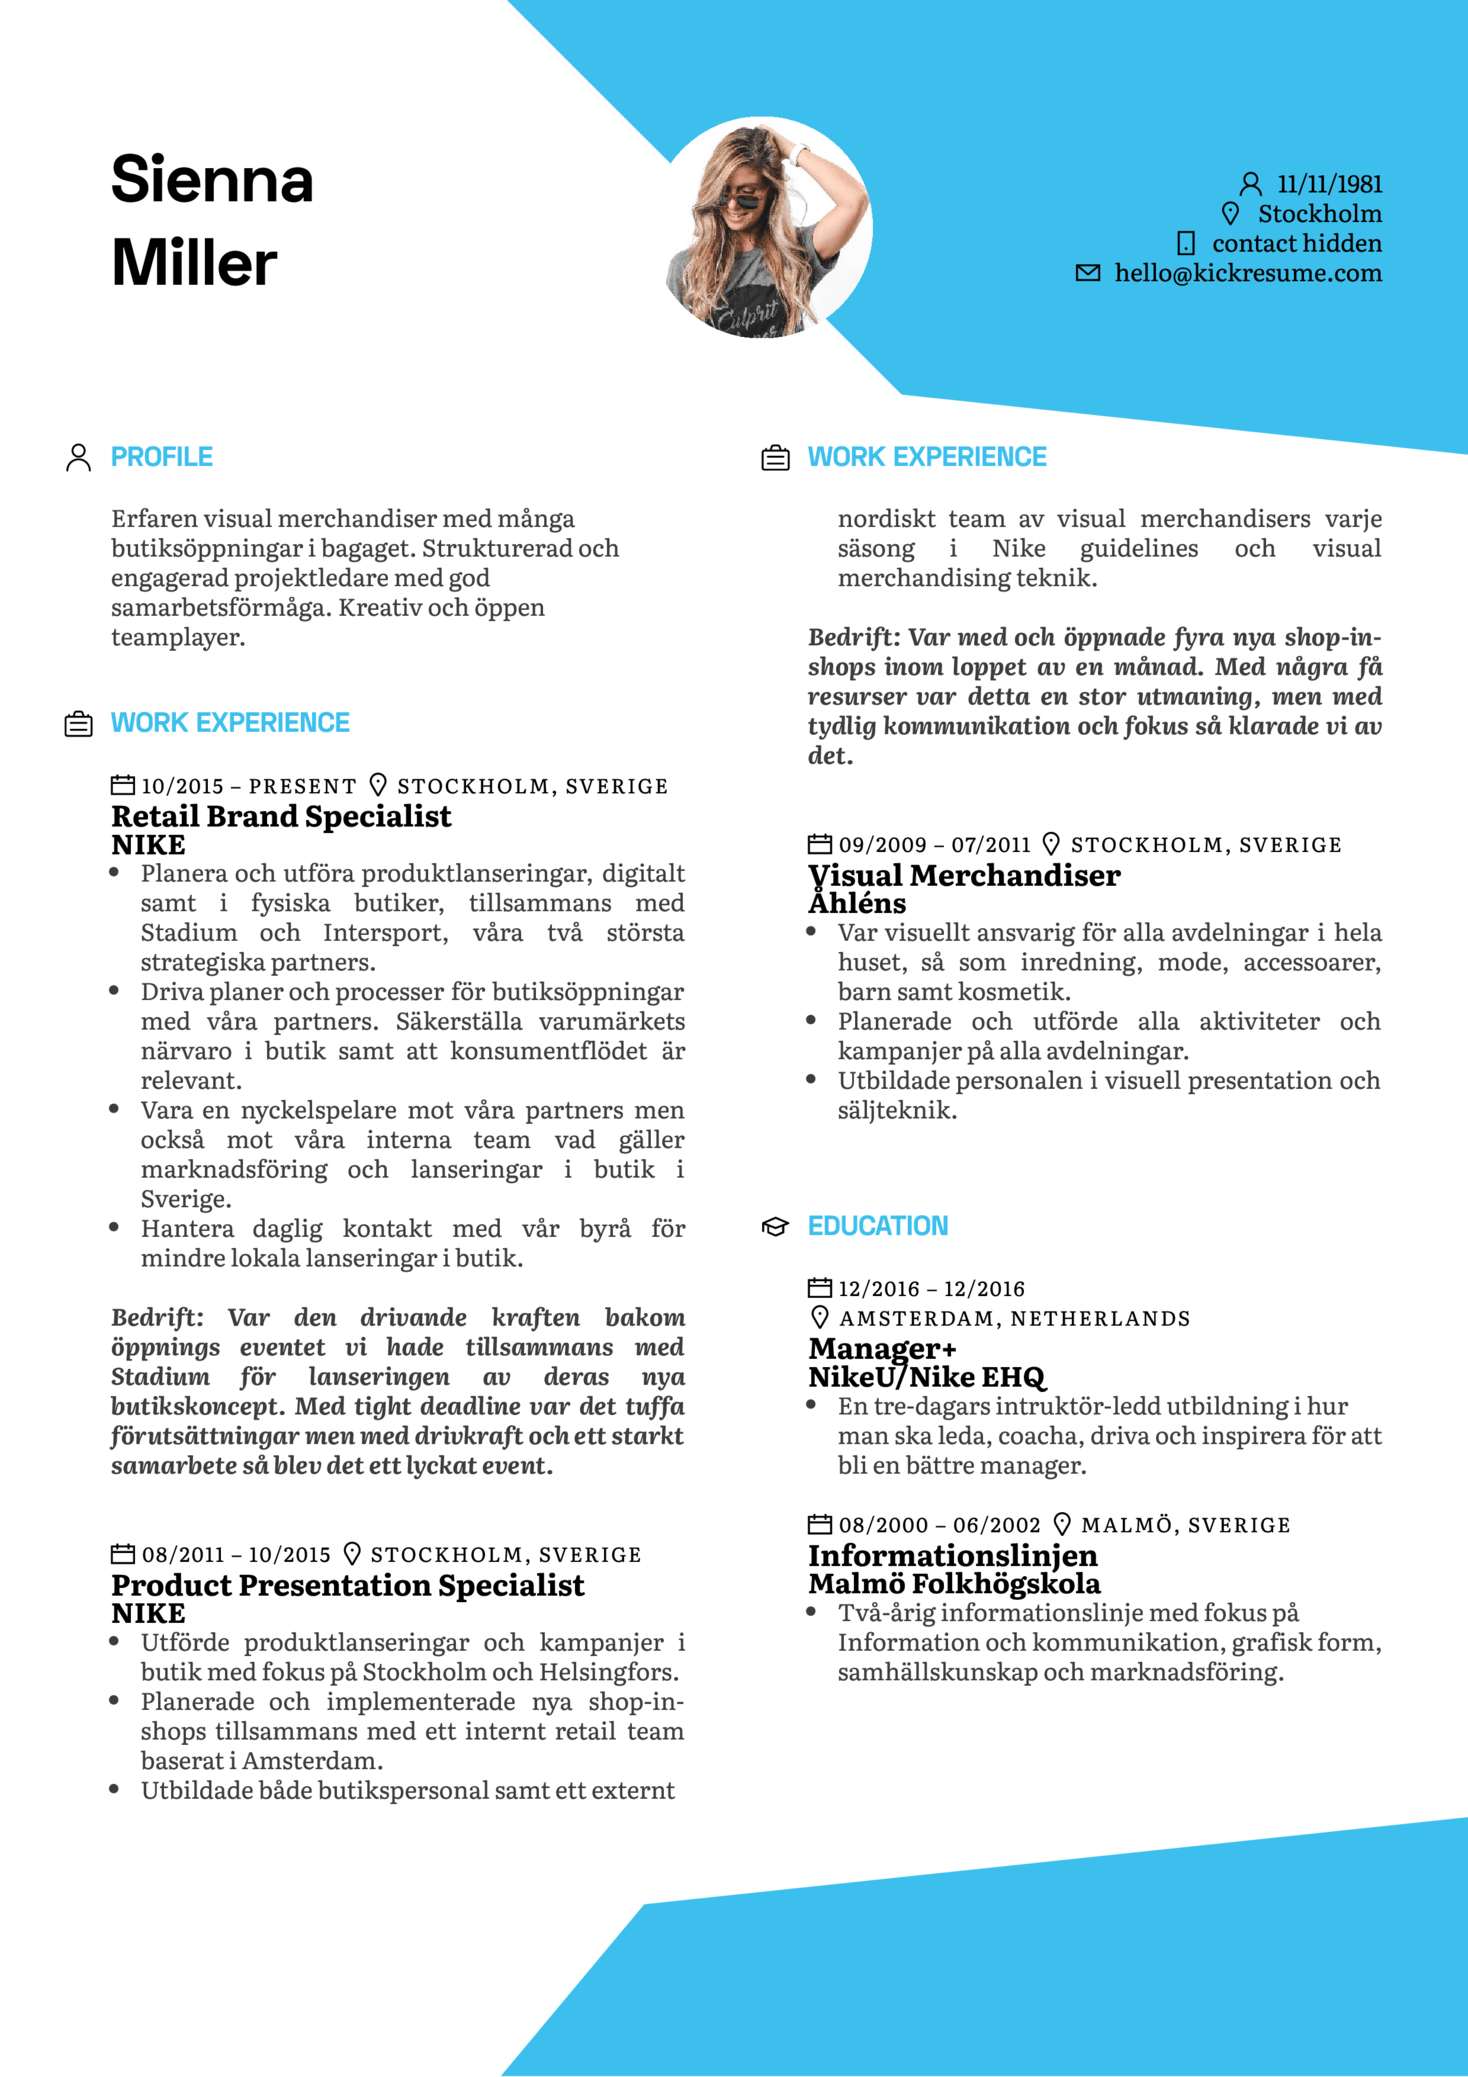 Resume Examples By Real People Nike Retail Brand Specialist Swedish Kickresume